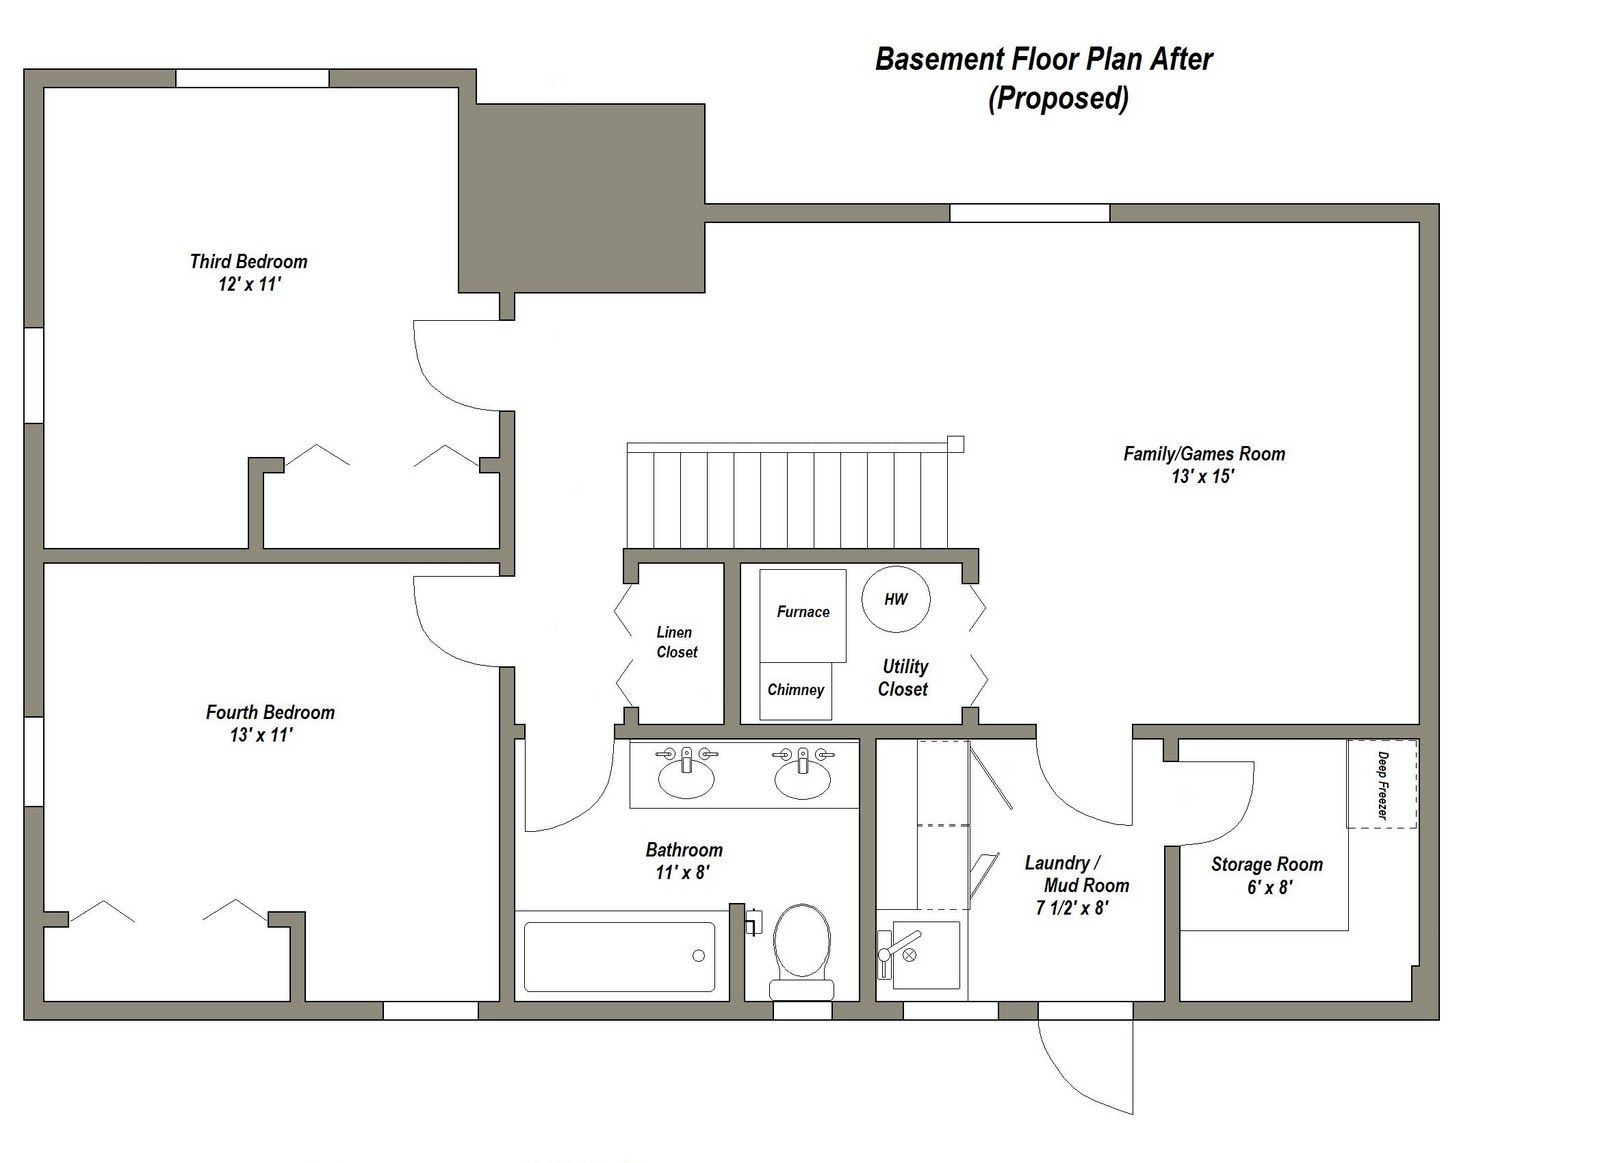 House Plans With Basements house plans with walkout basements 2 bedroom house plans with walkout basement walkout basement Finished Basement Floor Plans Finished Basement Floor Plans Younger Unger